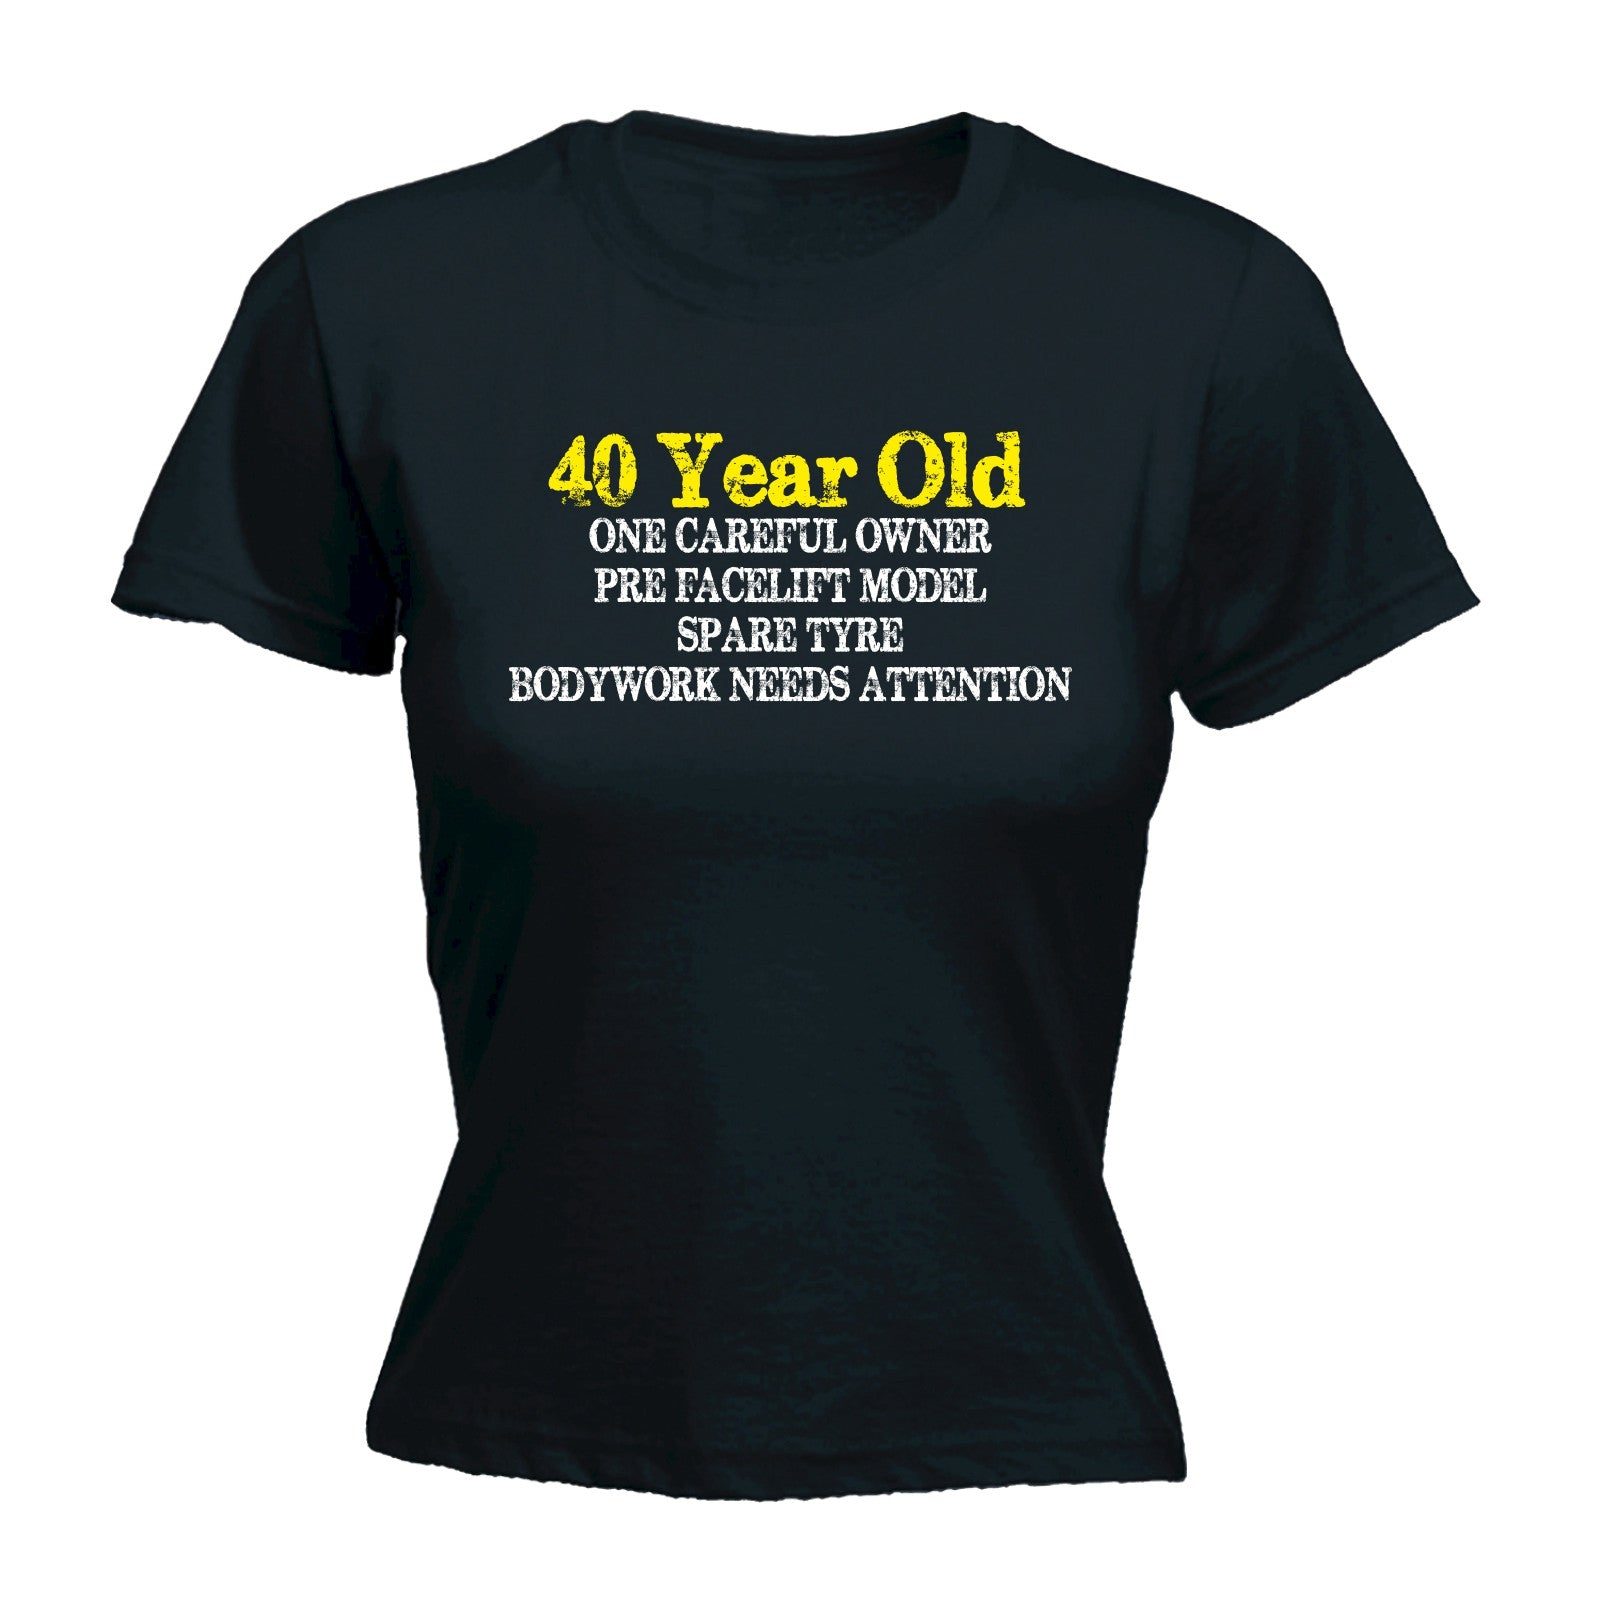 40 Years Old One Careful Owner WOMENS T